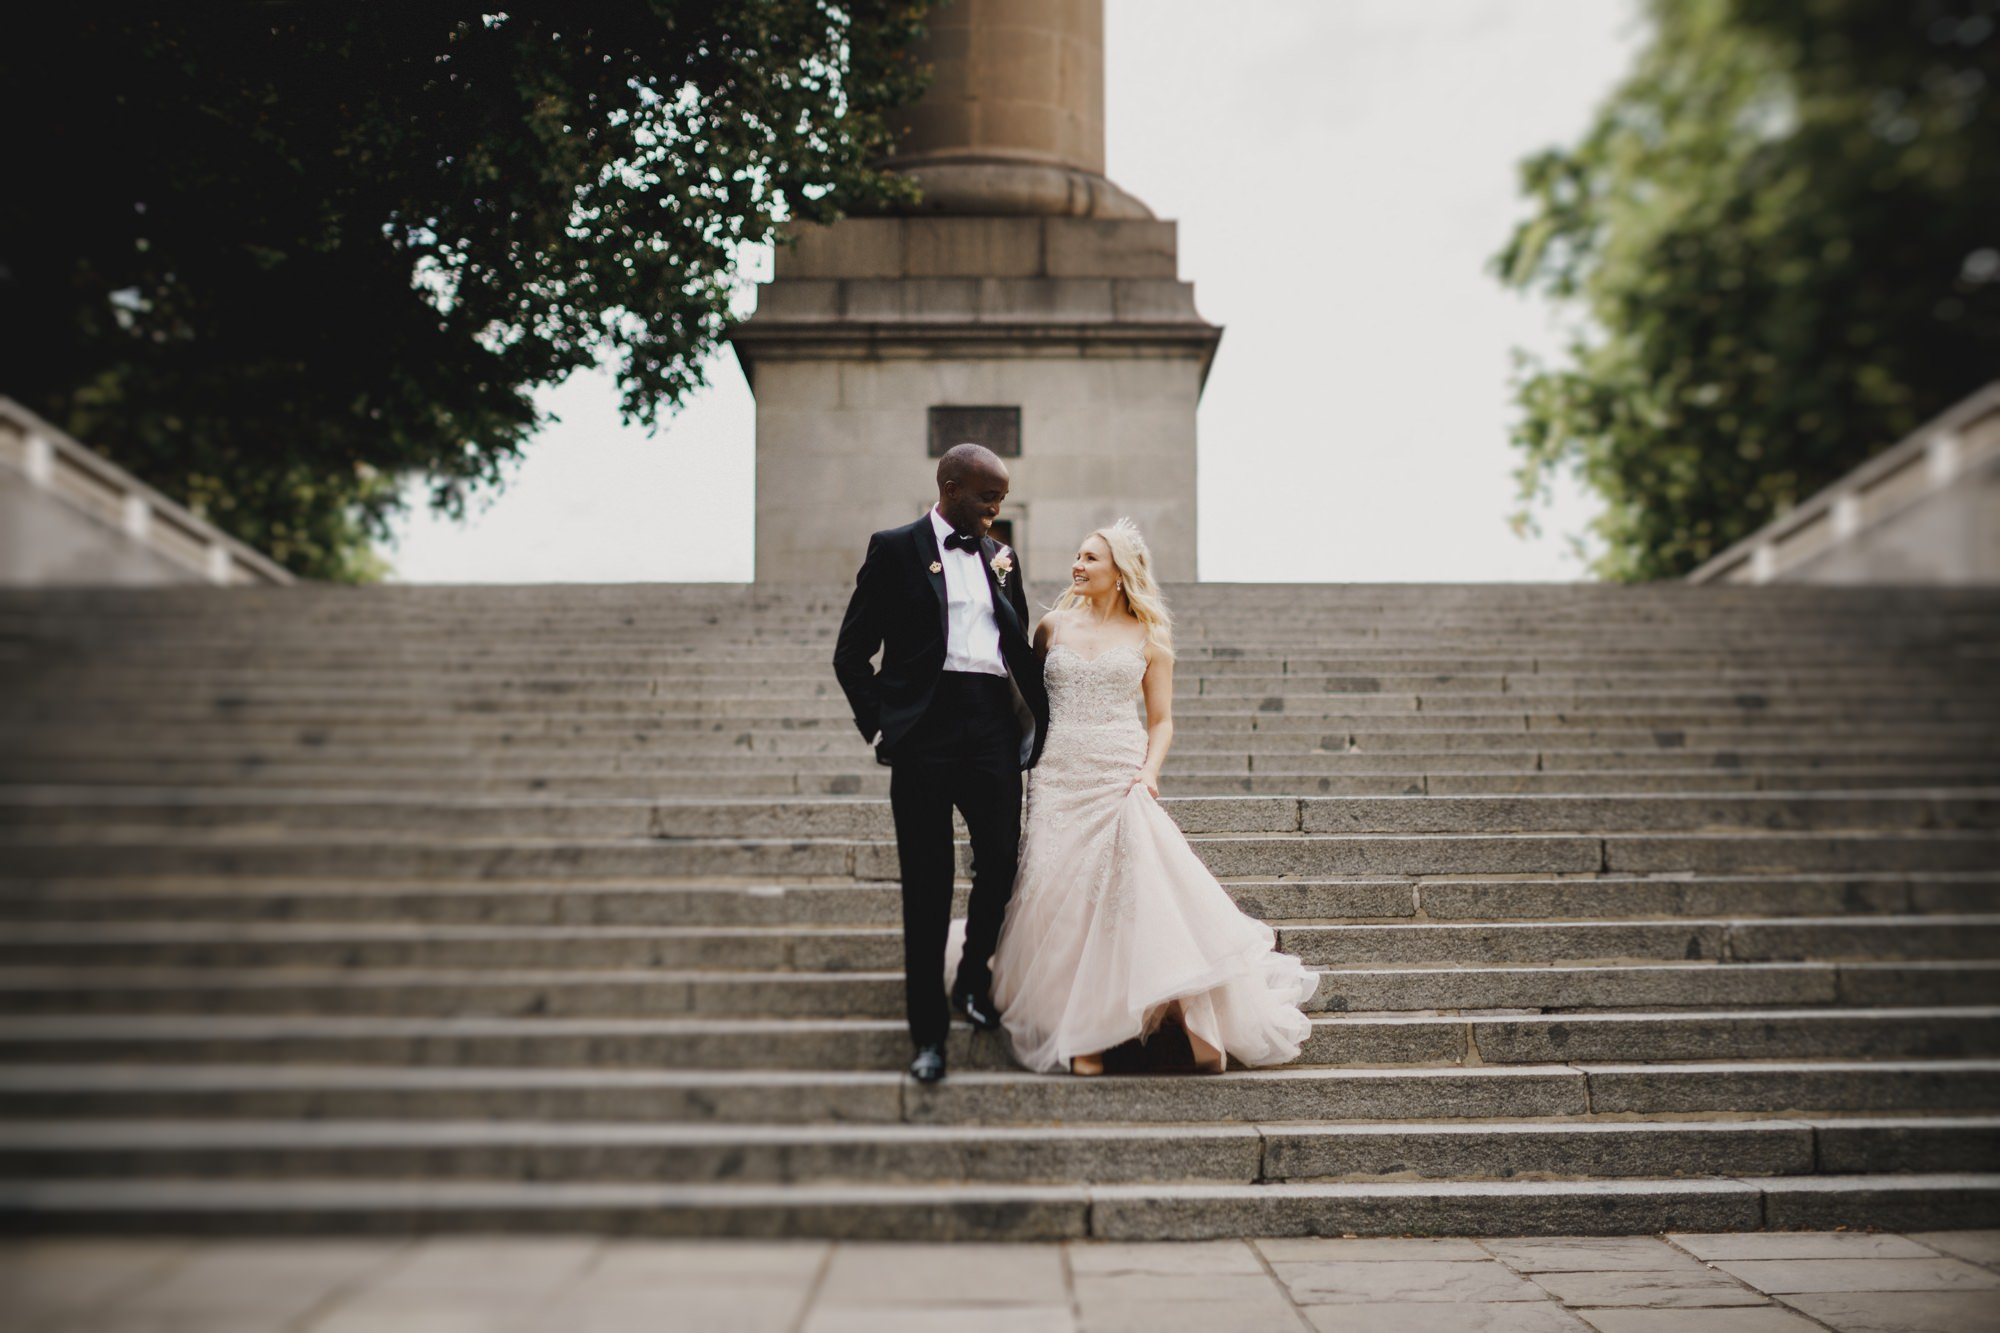 Pall Mall Wedding Photographer